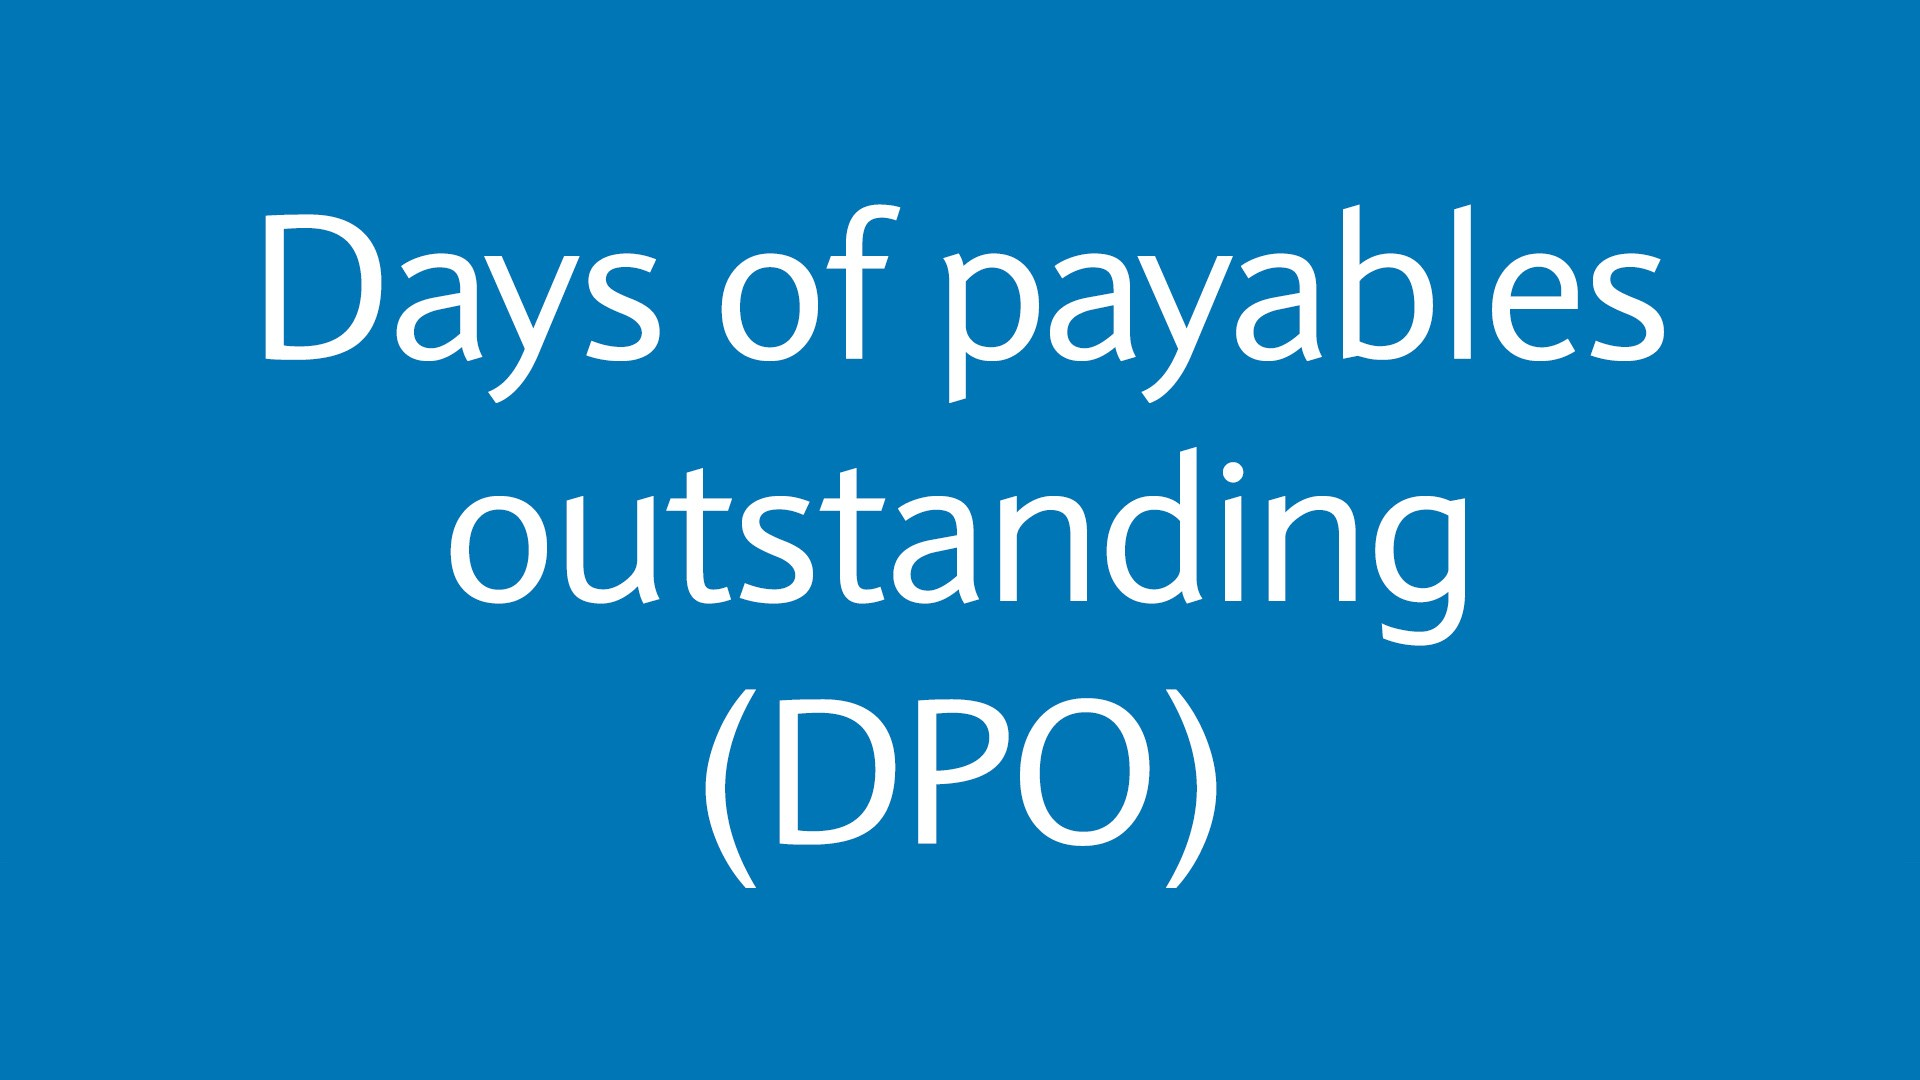 Days of payables outstanding (DPO)